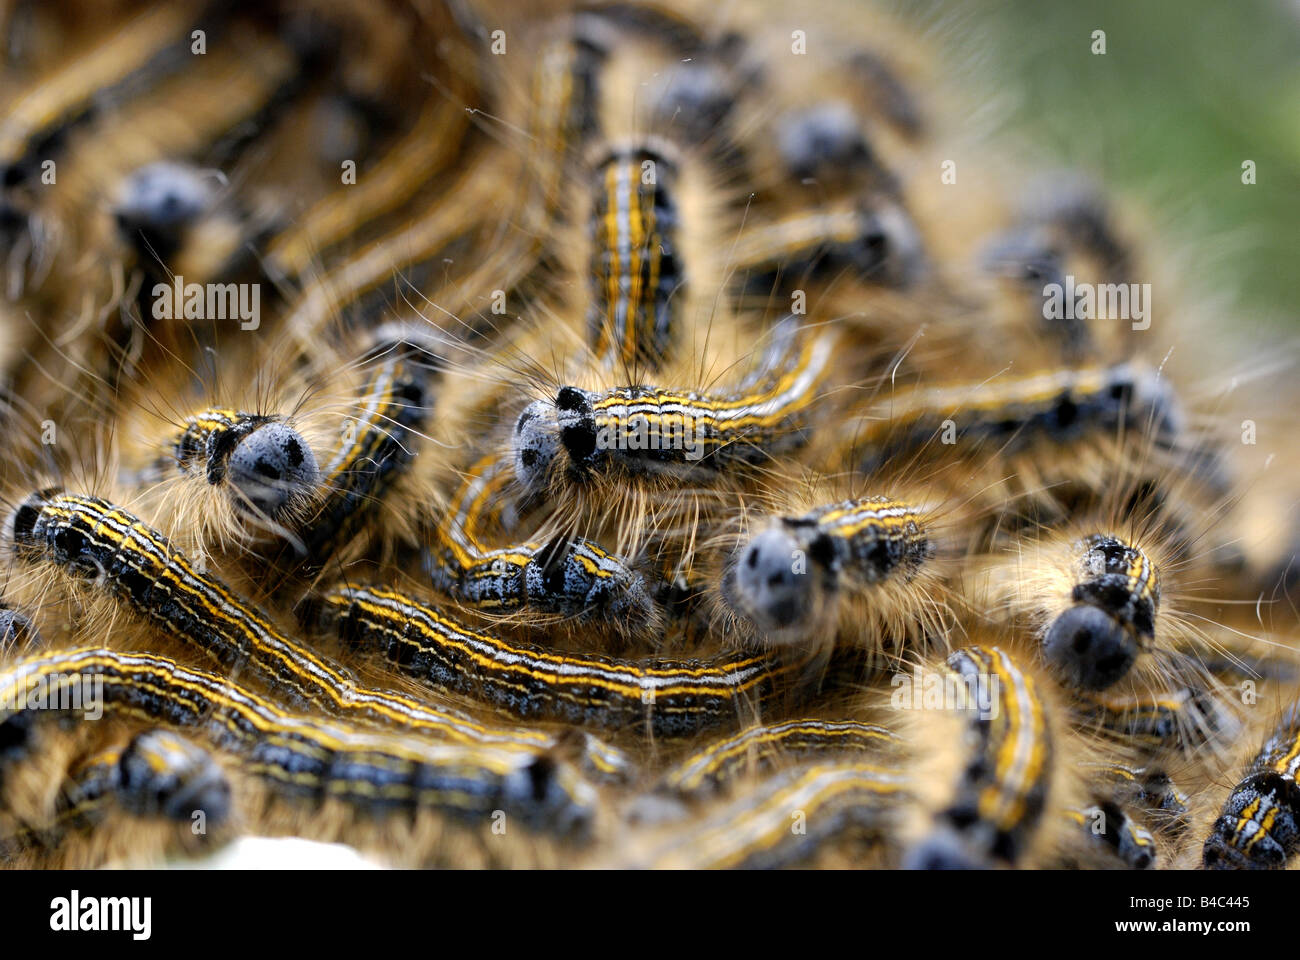 Lackey Moth caterpillars - Stock Image